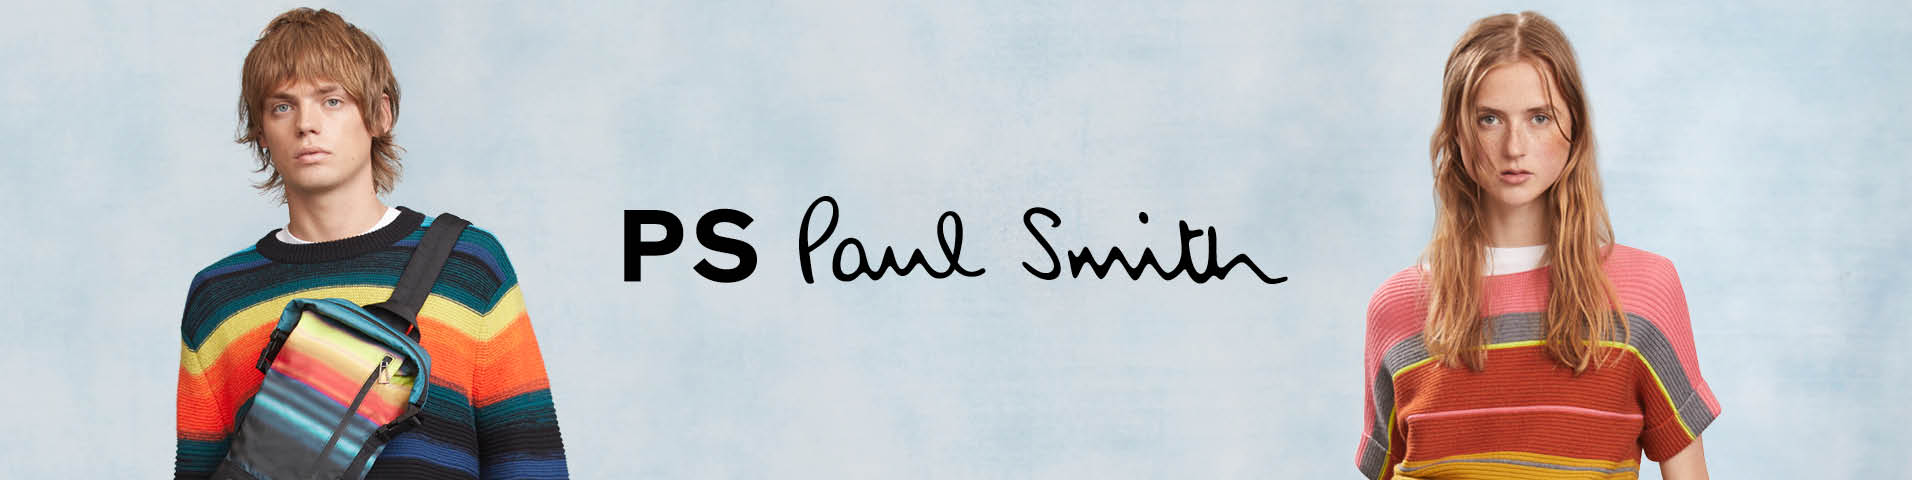 Paul Smith Merkshirts heren online | Gratis verzending